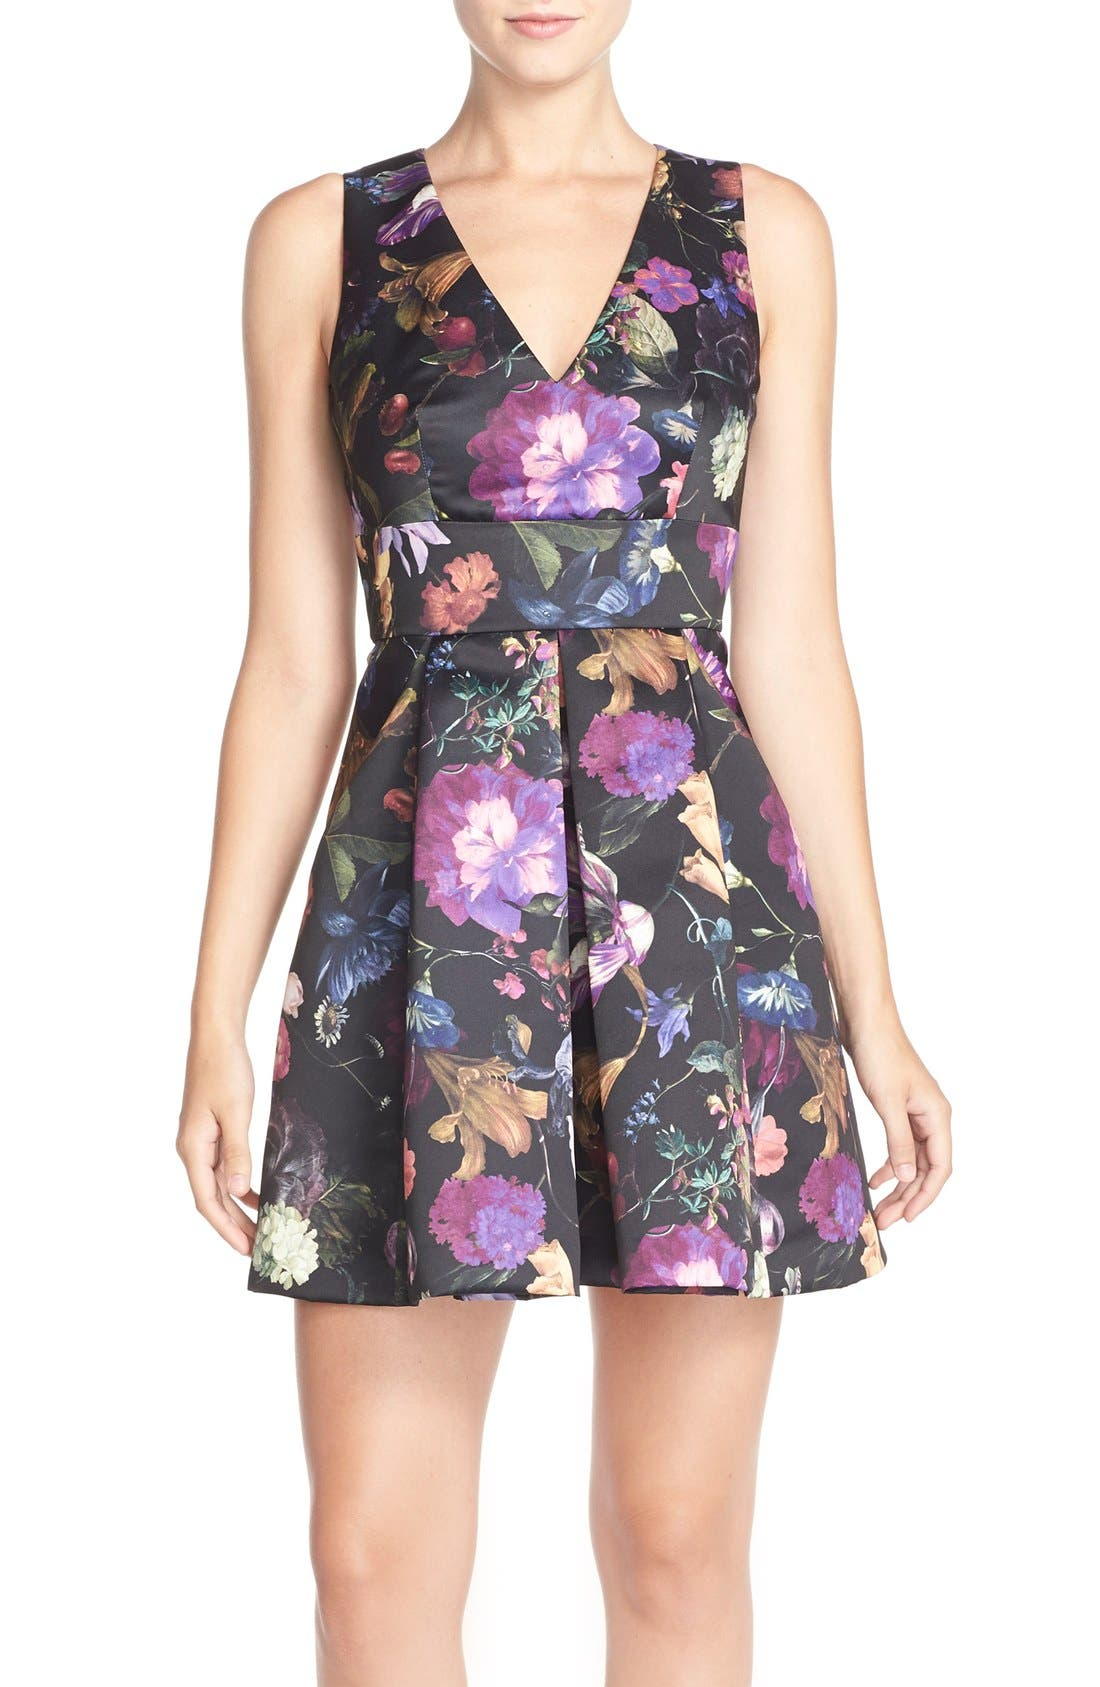 Main Image - CythiaRowley'Winter' Floral Print Woven Fit & Flare Dress